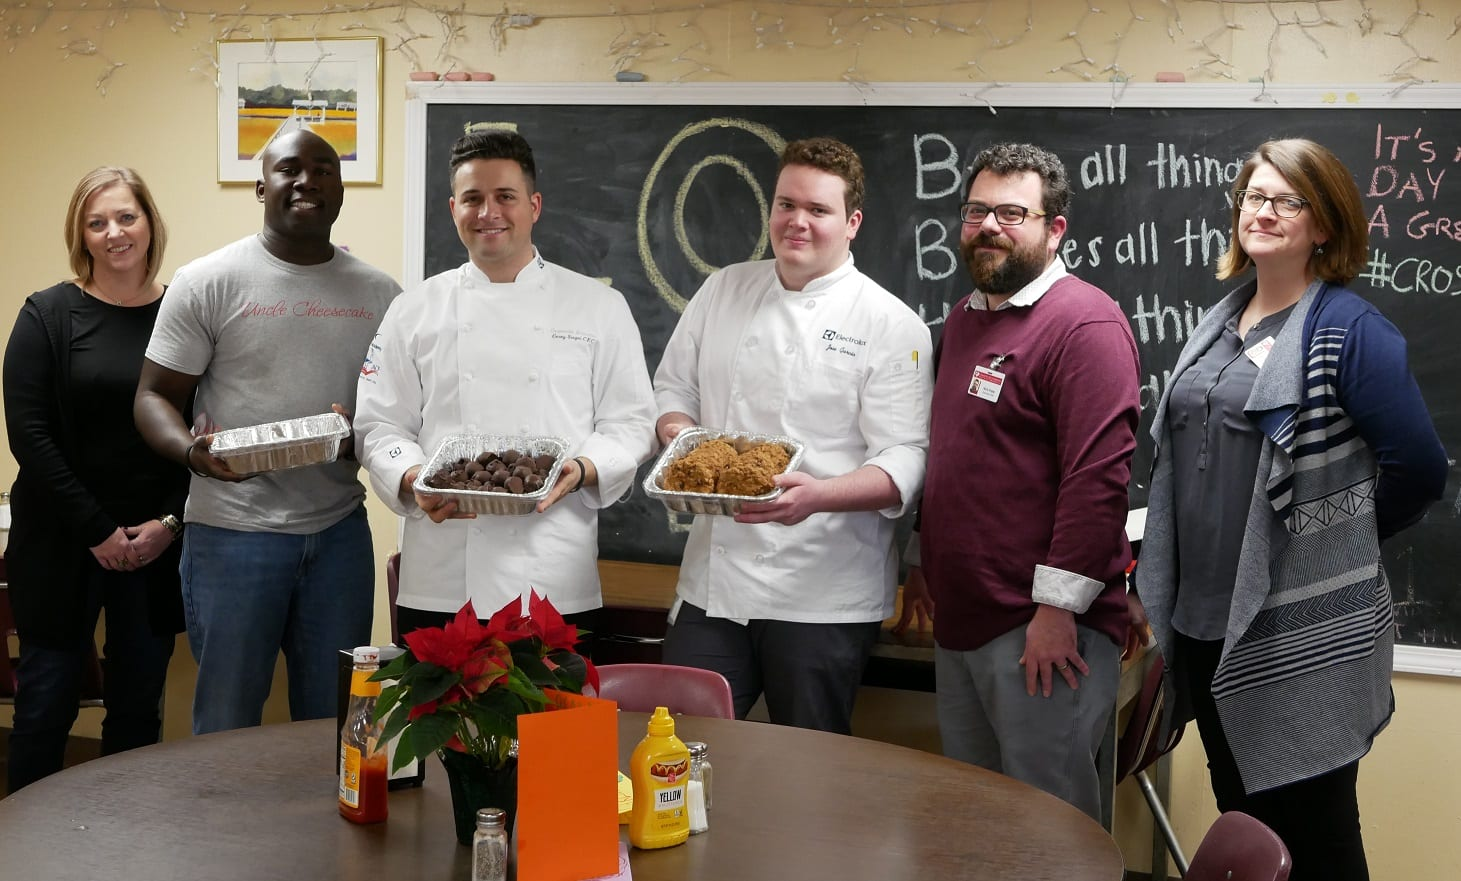 'Uncle Cheesecake' bakes with Electrolux, delivers holiday favorites to area non-profits